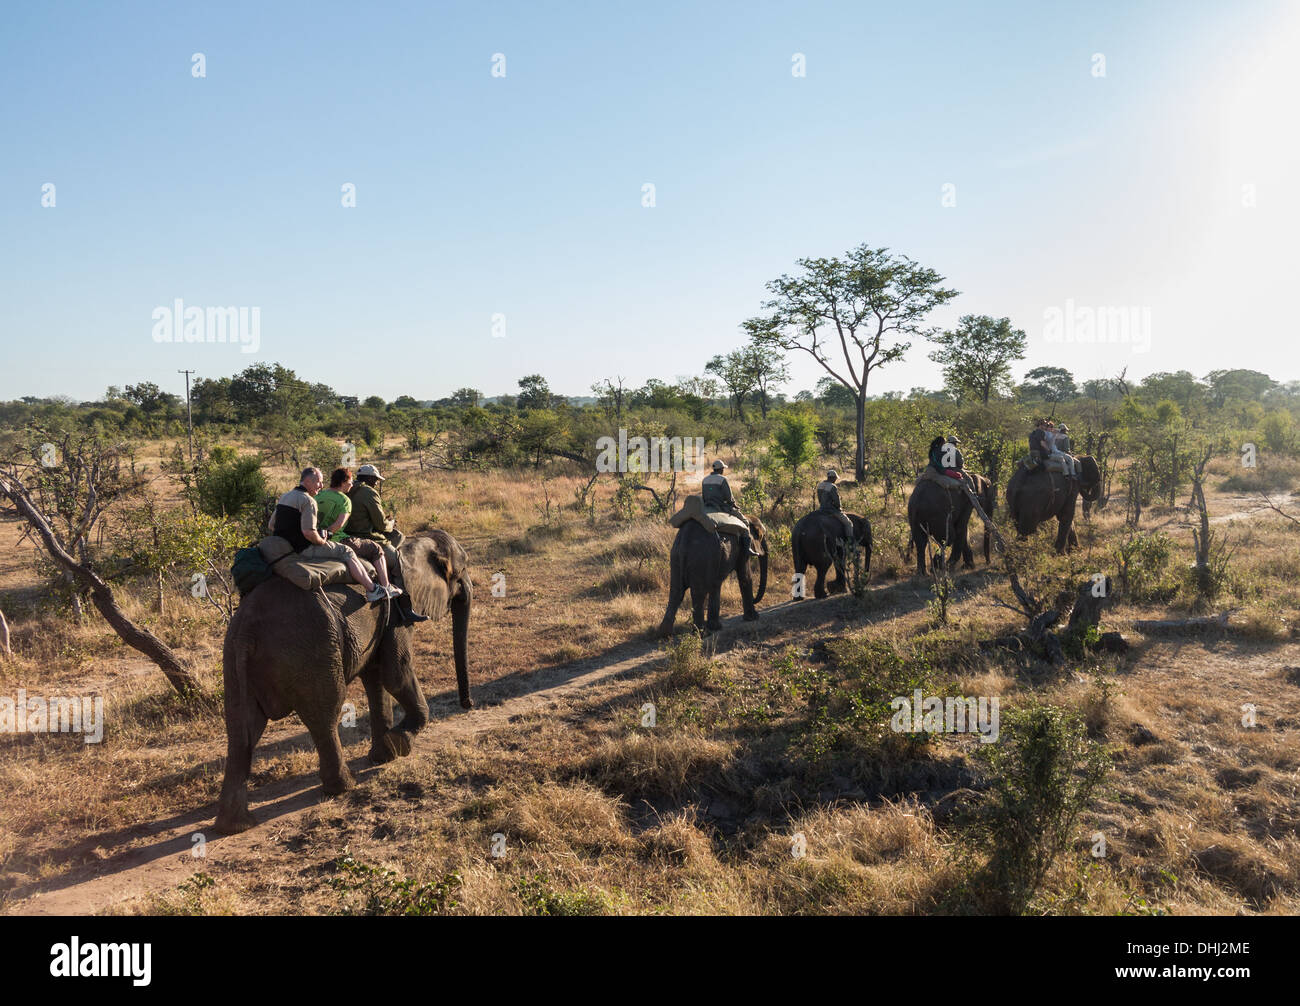 Tourists on Elephant safari, Zambia, Africa - Stock Image